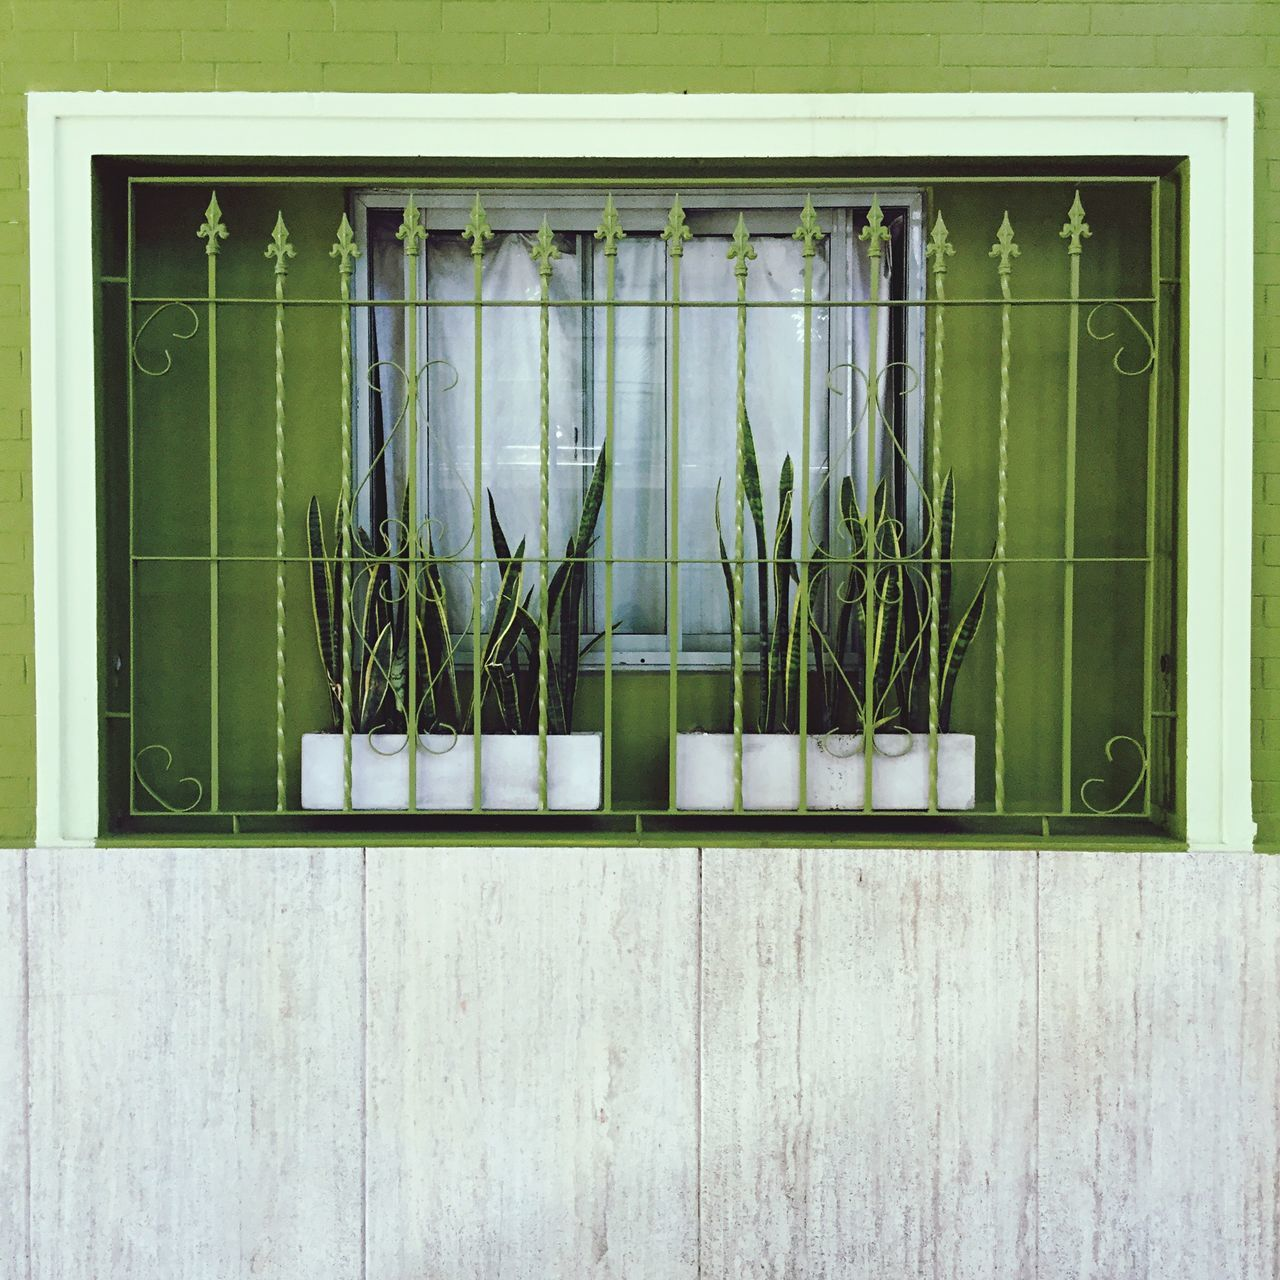 Green Color Building Exterior Built Structure Plant Window Architecture No People Day Grass Outdoors Nature Window Collection Green Wall Getting In Shape Getting Inspired Getting Creative Architecture_collection Architecture Details